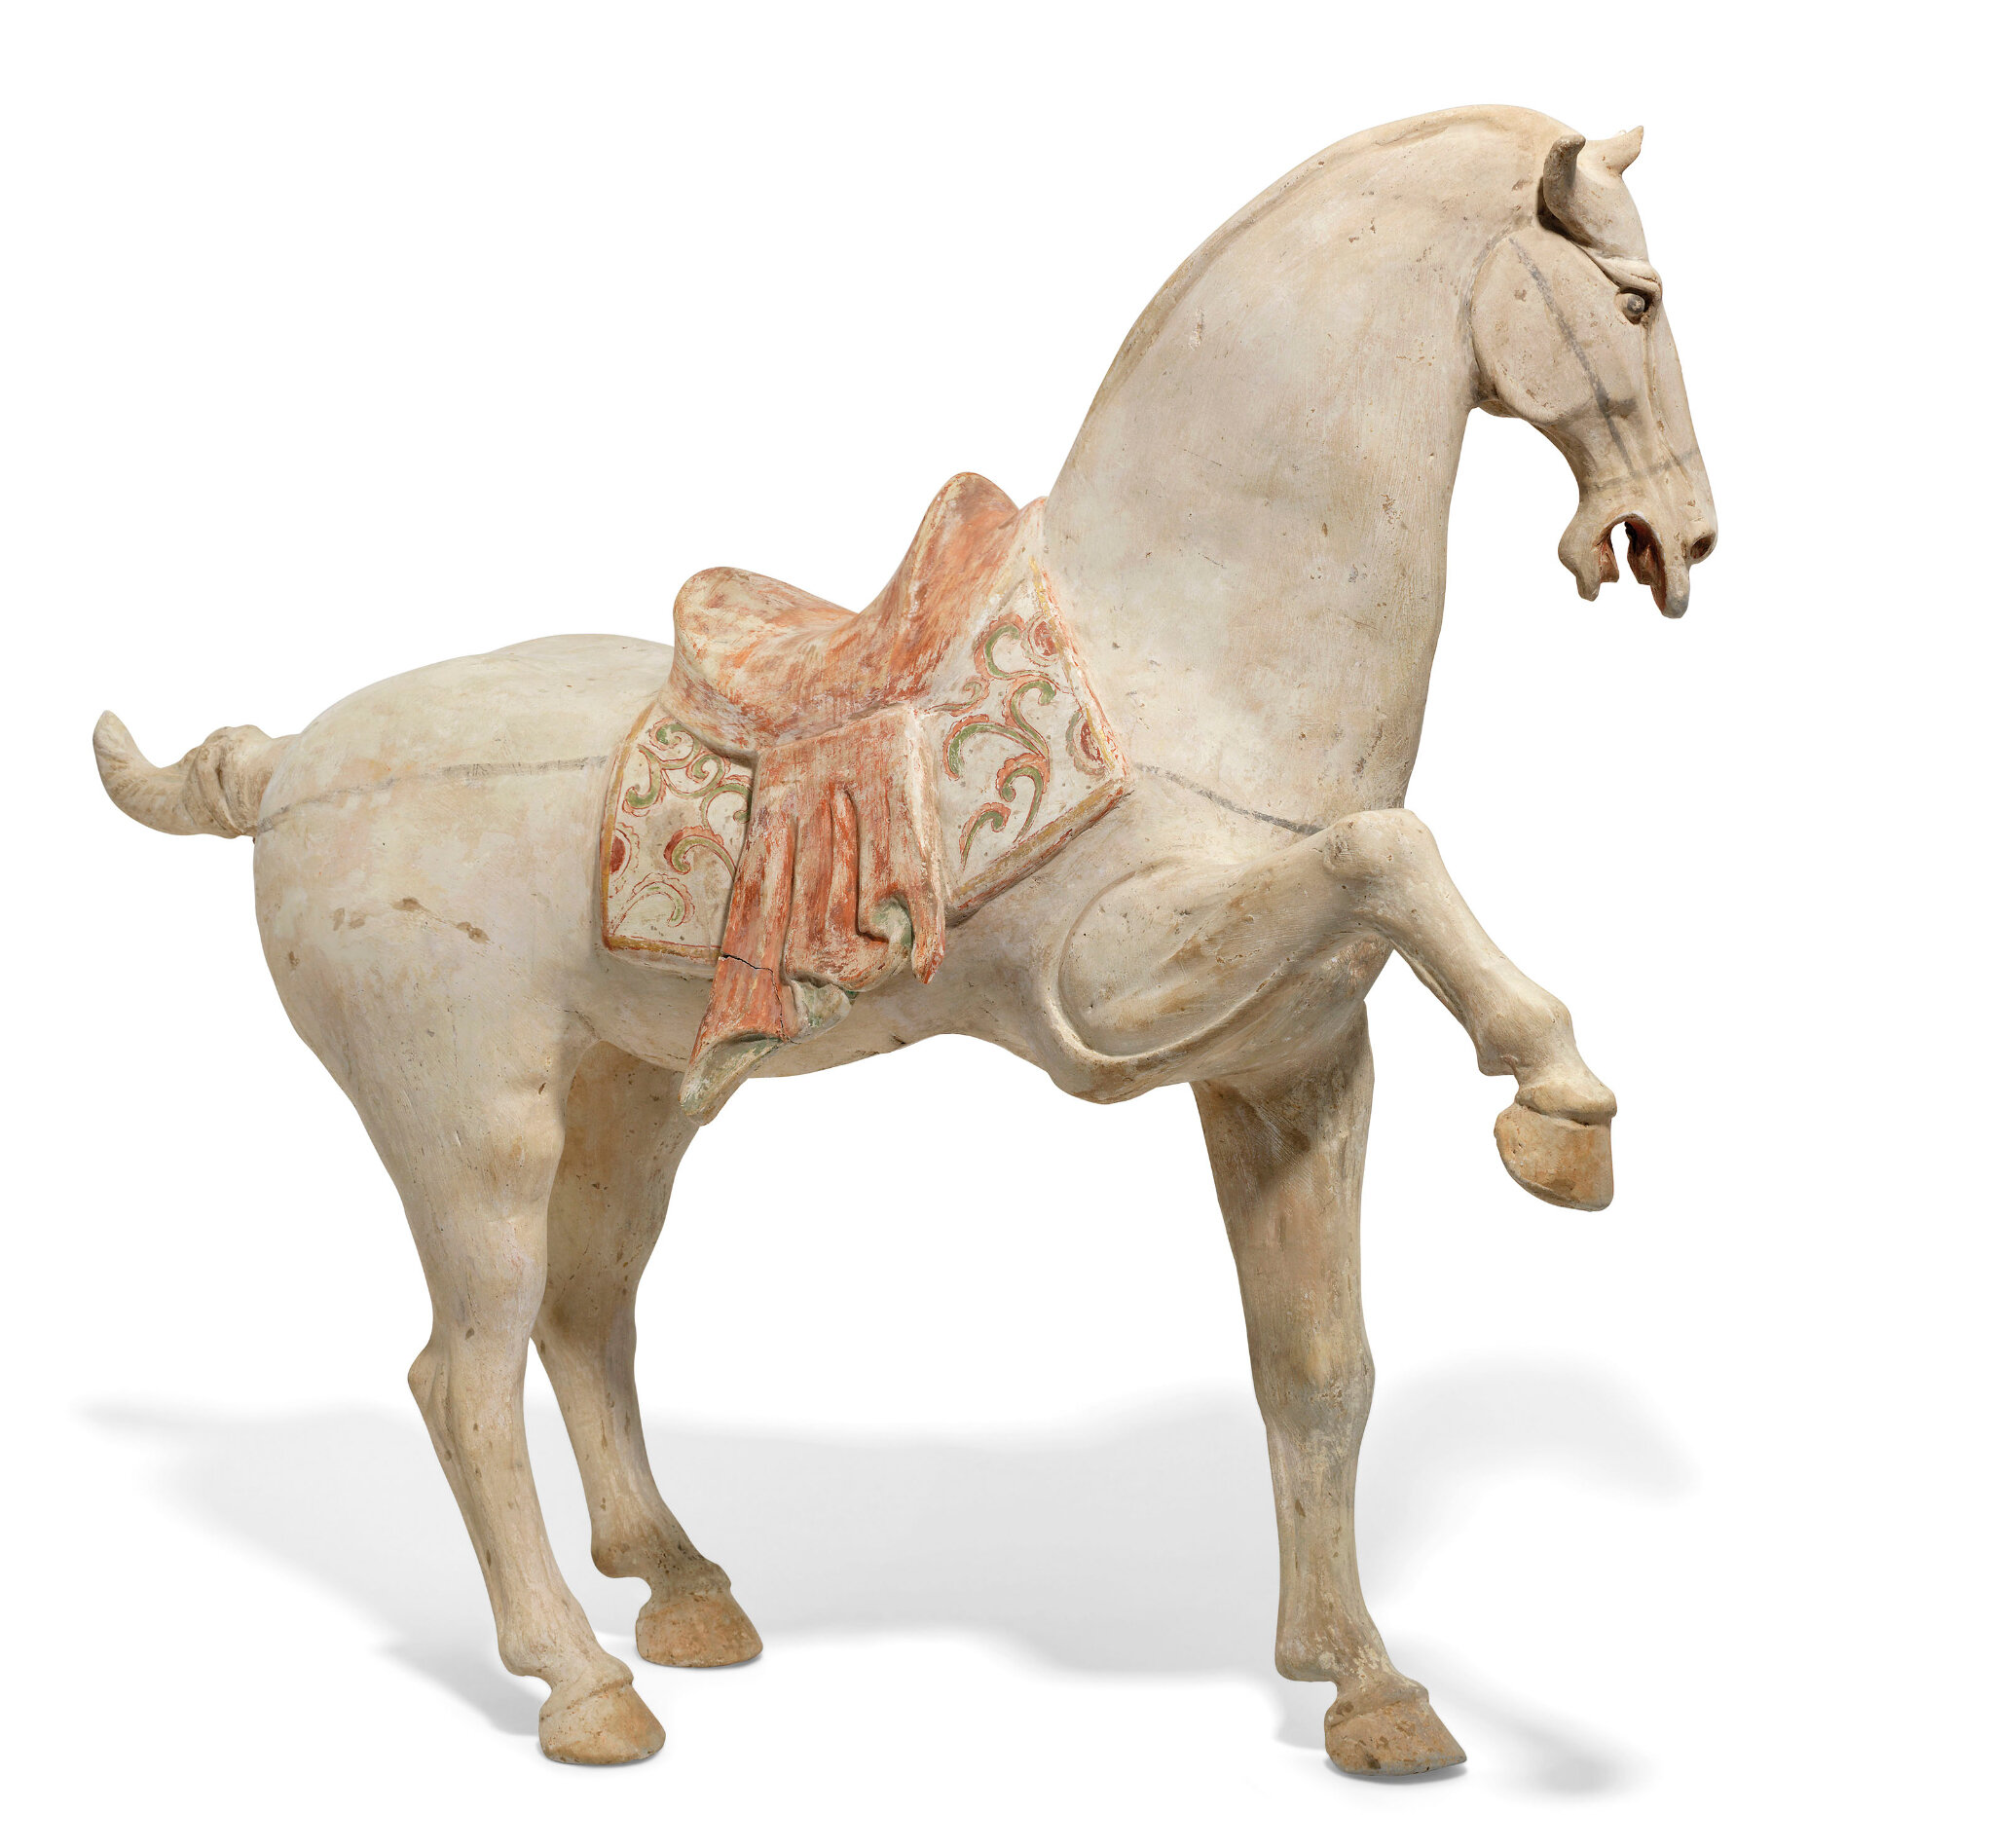 A large painted pottery figure of a prancing horse, Tang dynasty (ad 618-907)